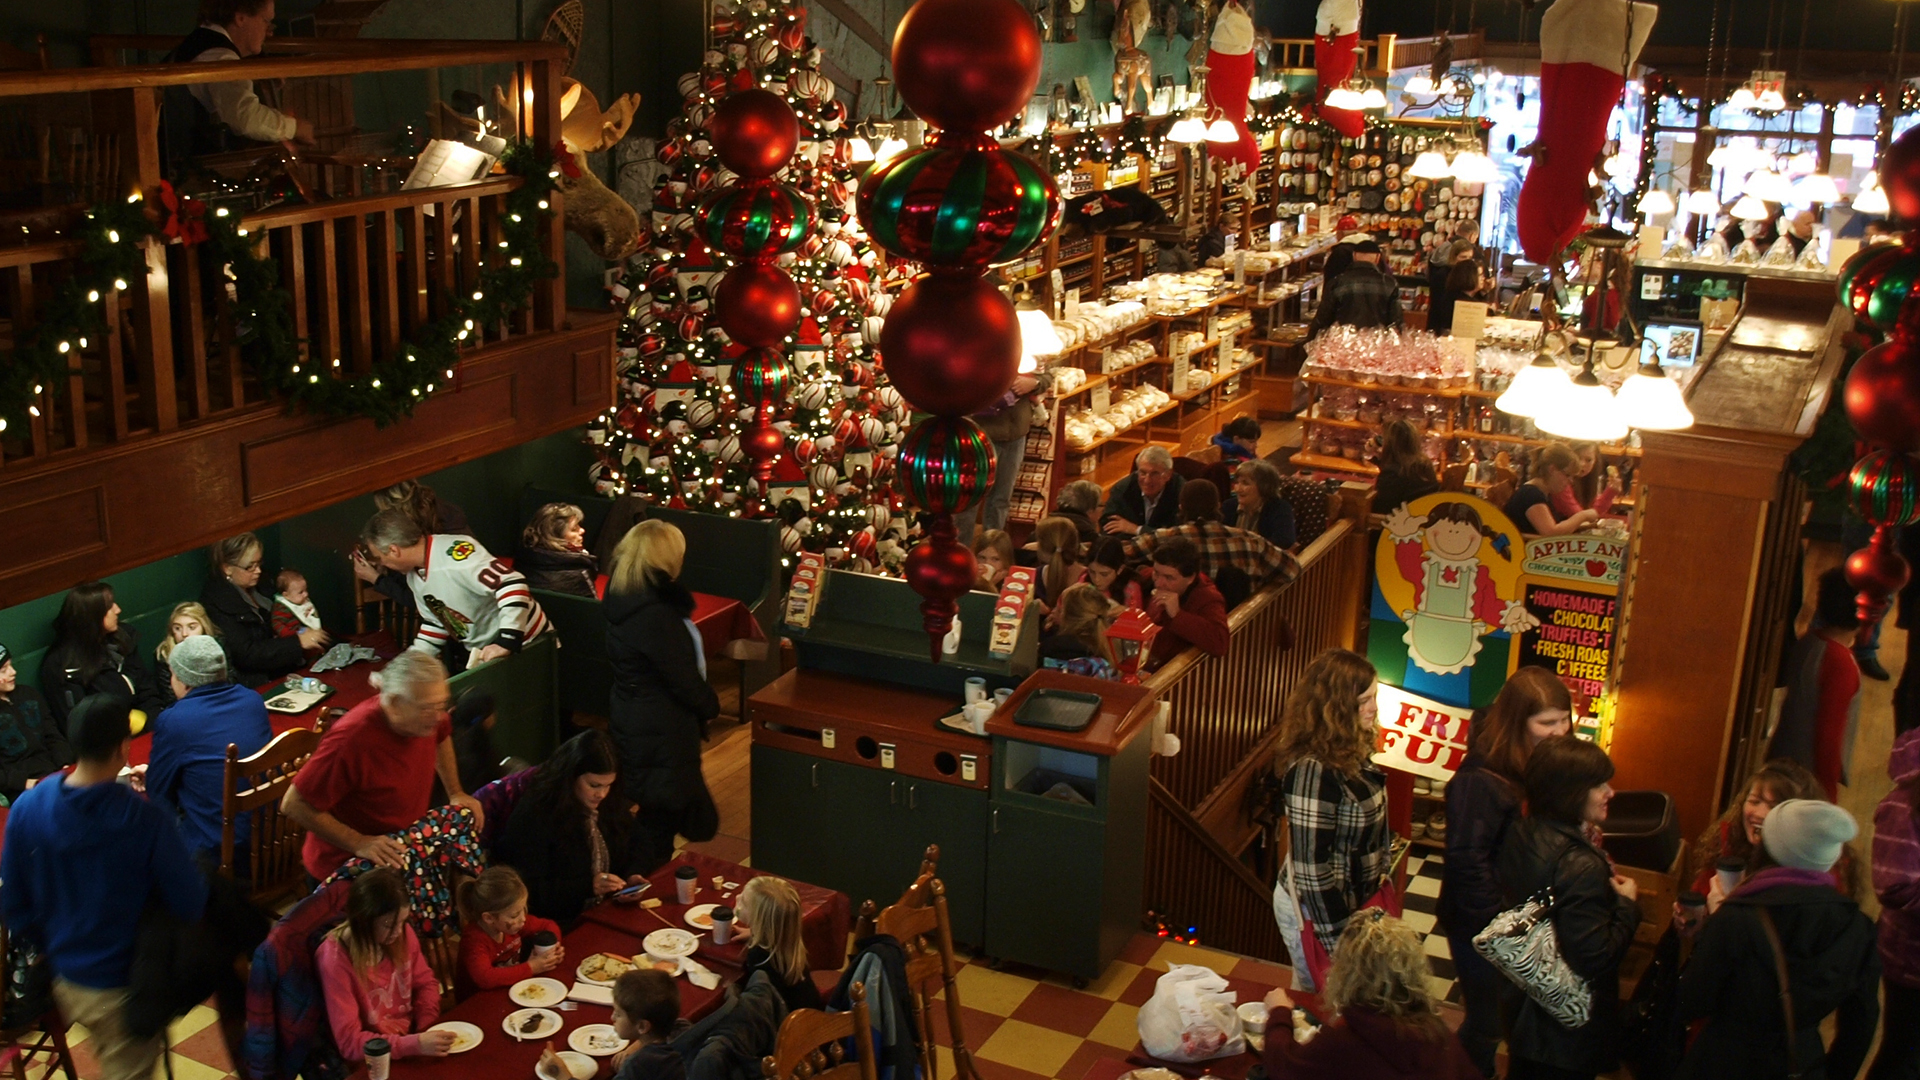 Christmas Market - November Events You Need To Experience